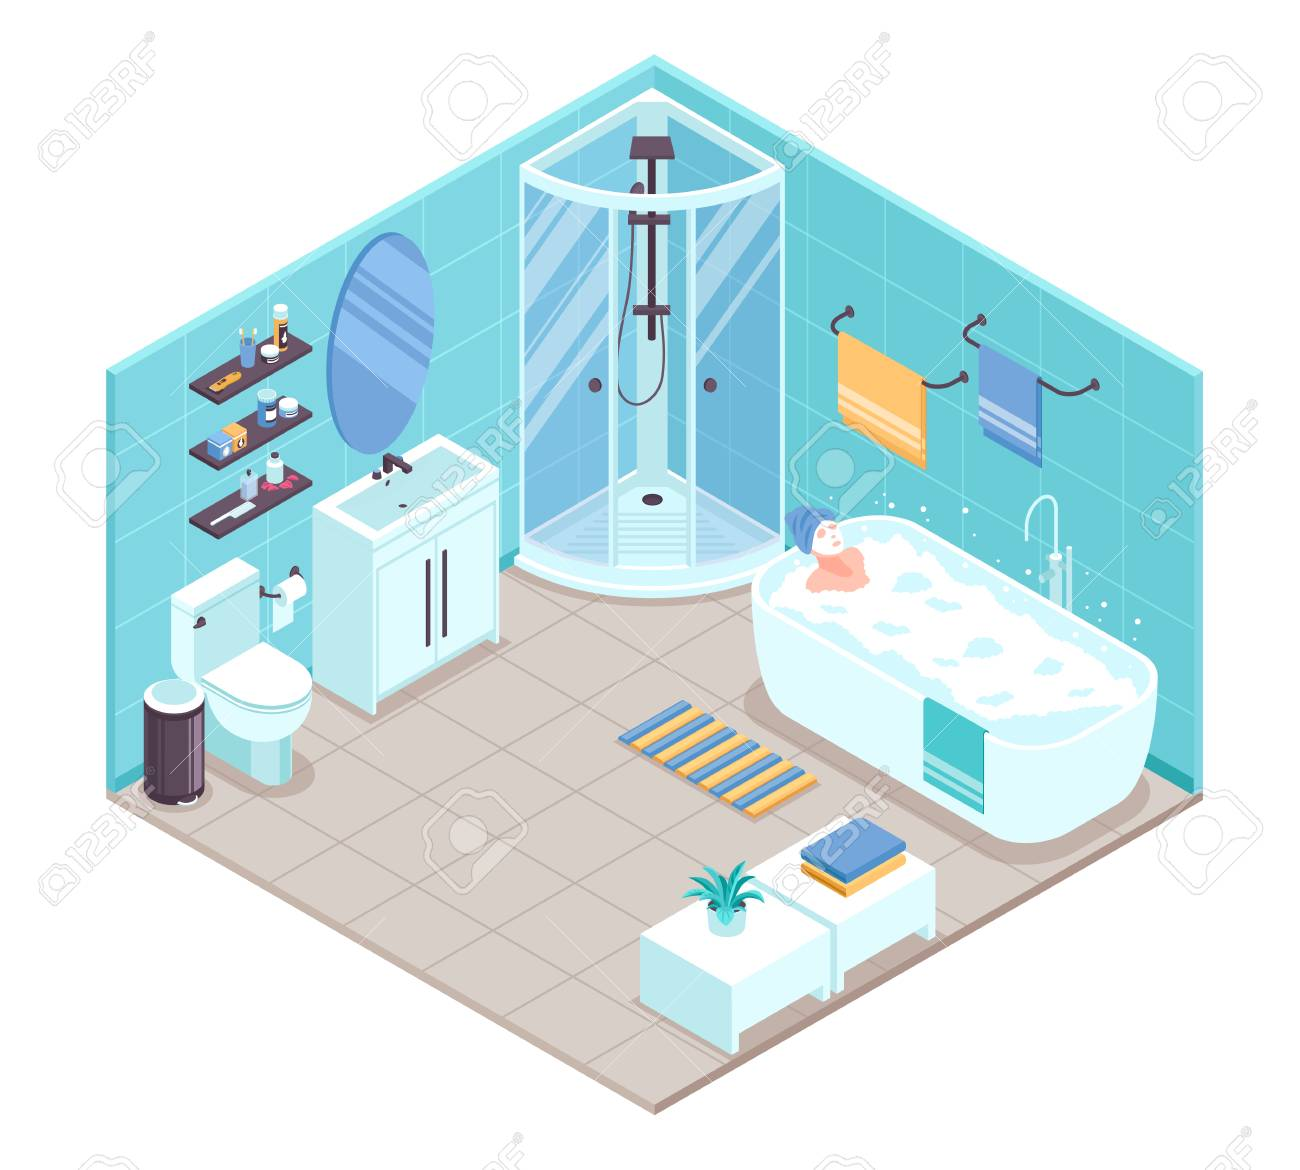 hight resolution of bathroom interior isometric view with oval bathtub corner shower cabine toilet sink units towel holders accessories